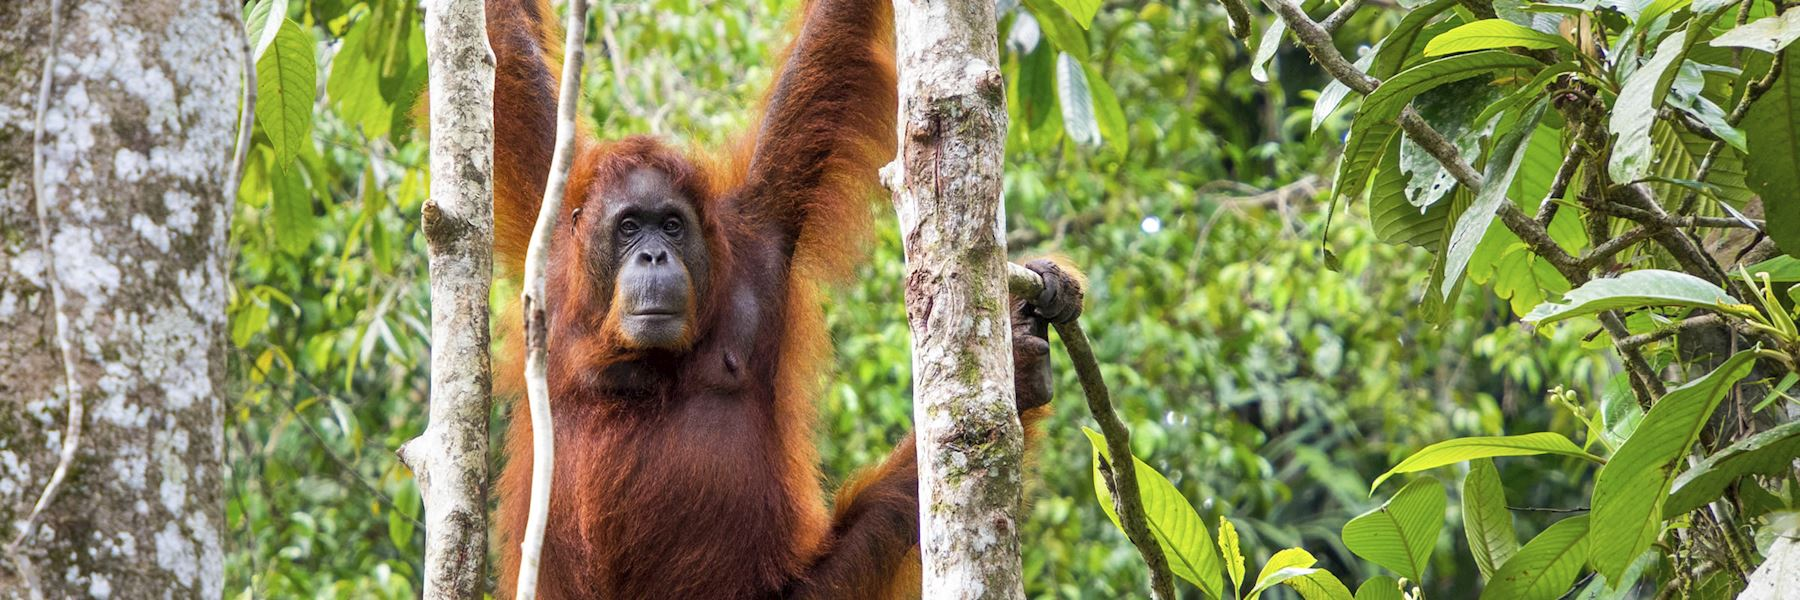 When is the best time to visit Borneo?